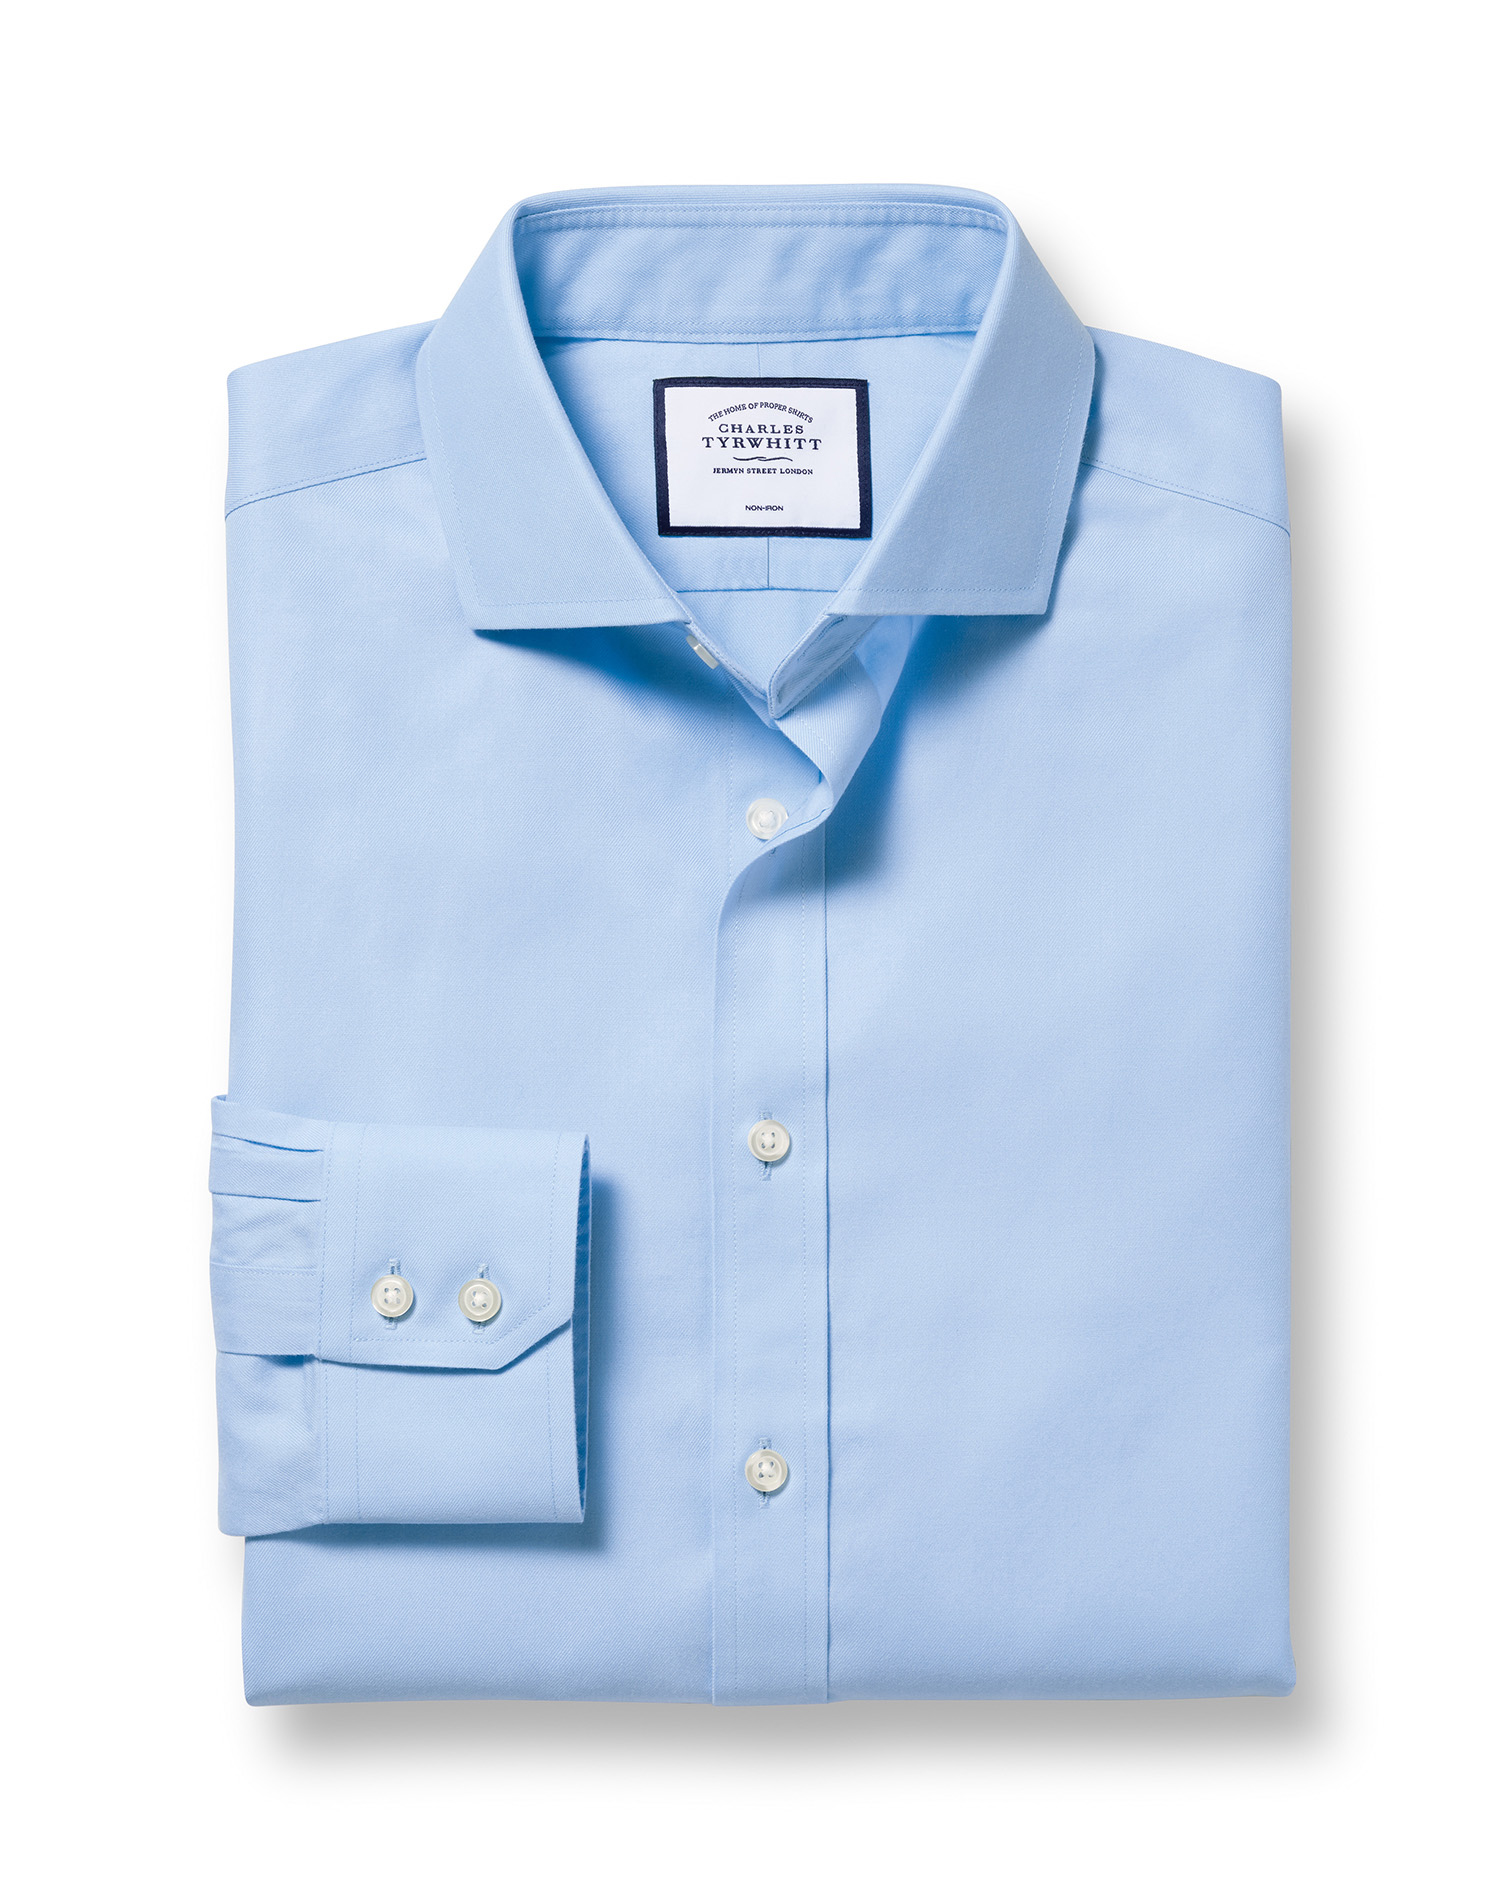 Classic Fit Cutaway Non-Iron Twill Sky Blue Cotton Formal Shirt Double Cuff Size 16.5/35 by Charles